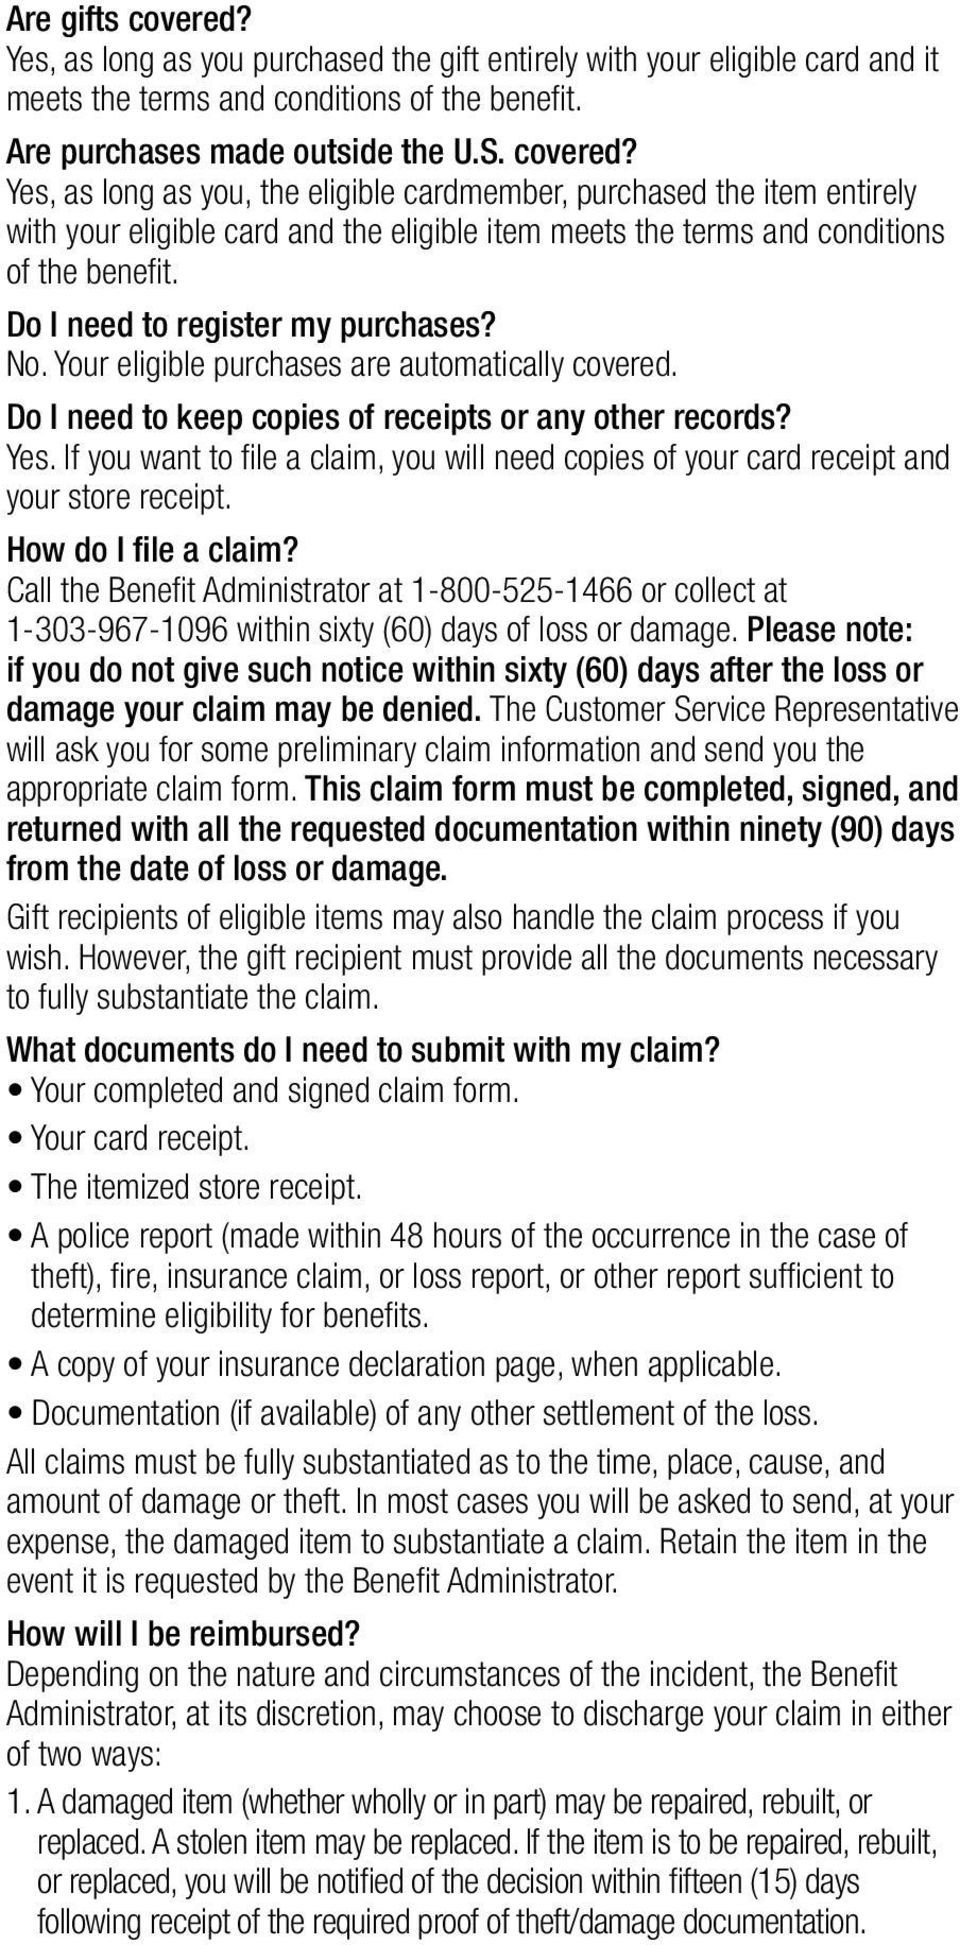 If you want to file a claim, you will need copies of your card receipt and your store receipt. How do I file a claim?